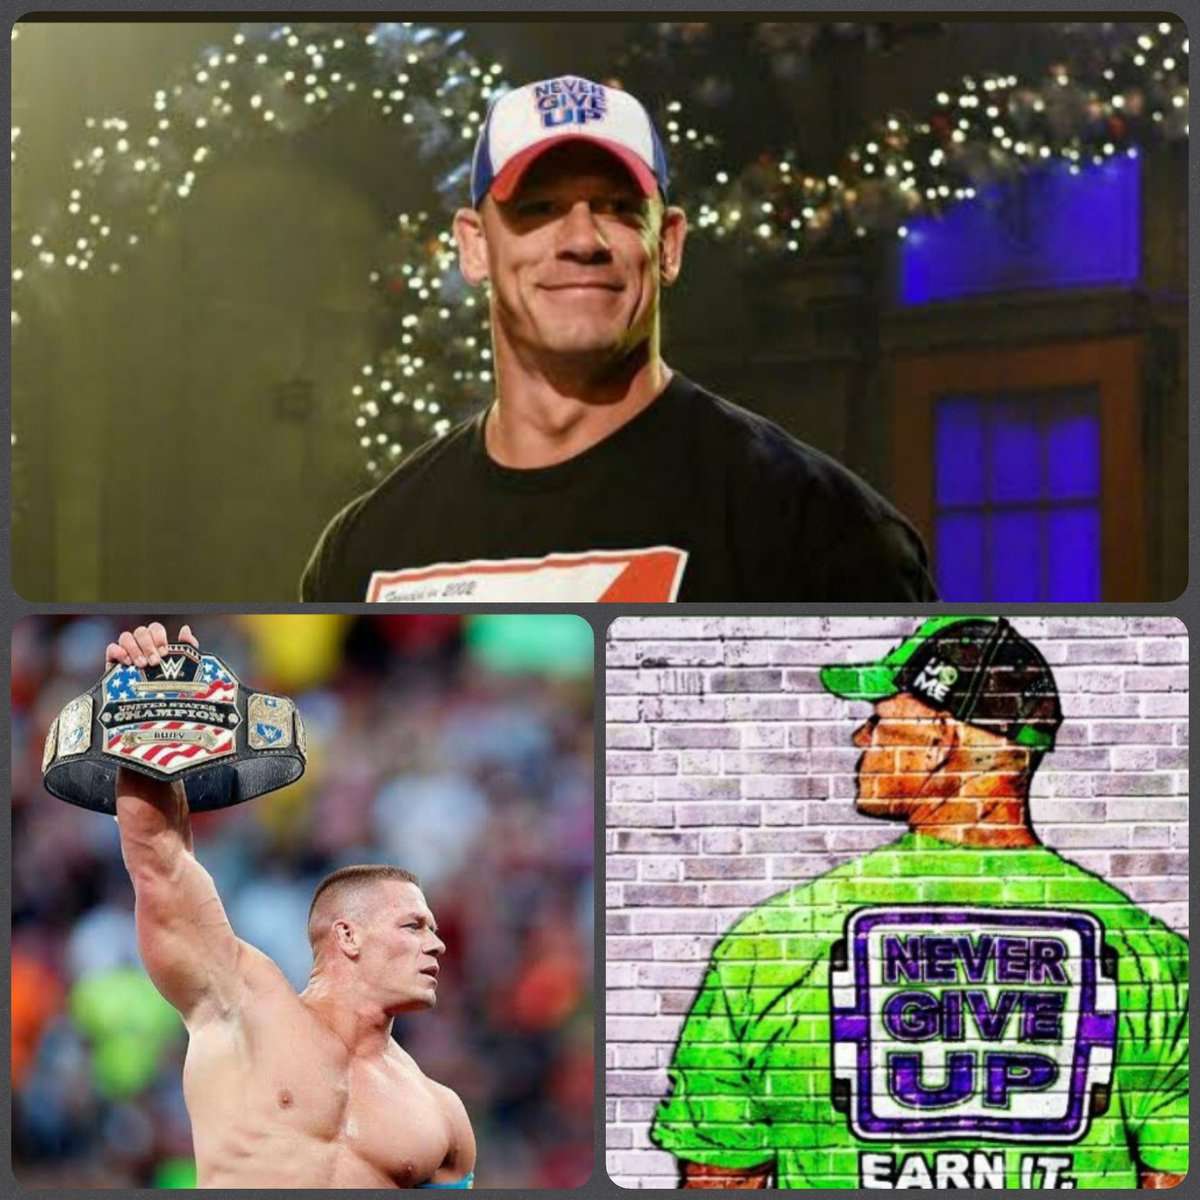 #JOHNCENA WAS THE REASON  I STARTED WATCHING WRESTLING. HOPE HE RETURNS ANY TIME SOON. @JohnCena   PS : I took this pics from a page on #Twitter . However, I don't remember his name. Thanks to him.  #wwe #wweraw #smackdown #wwenxt #aew #AEW #AEWDyanmite #Wrestling #ProWrestling